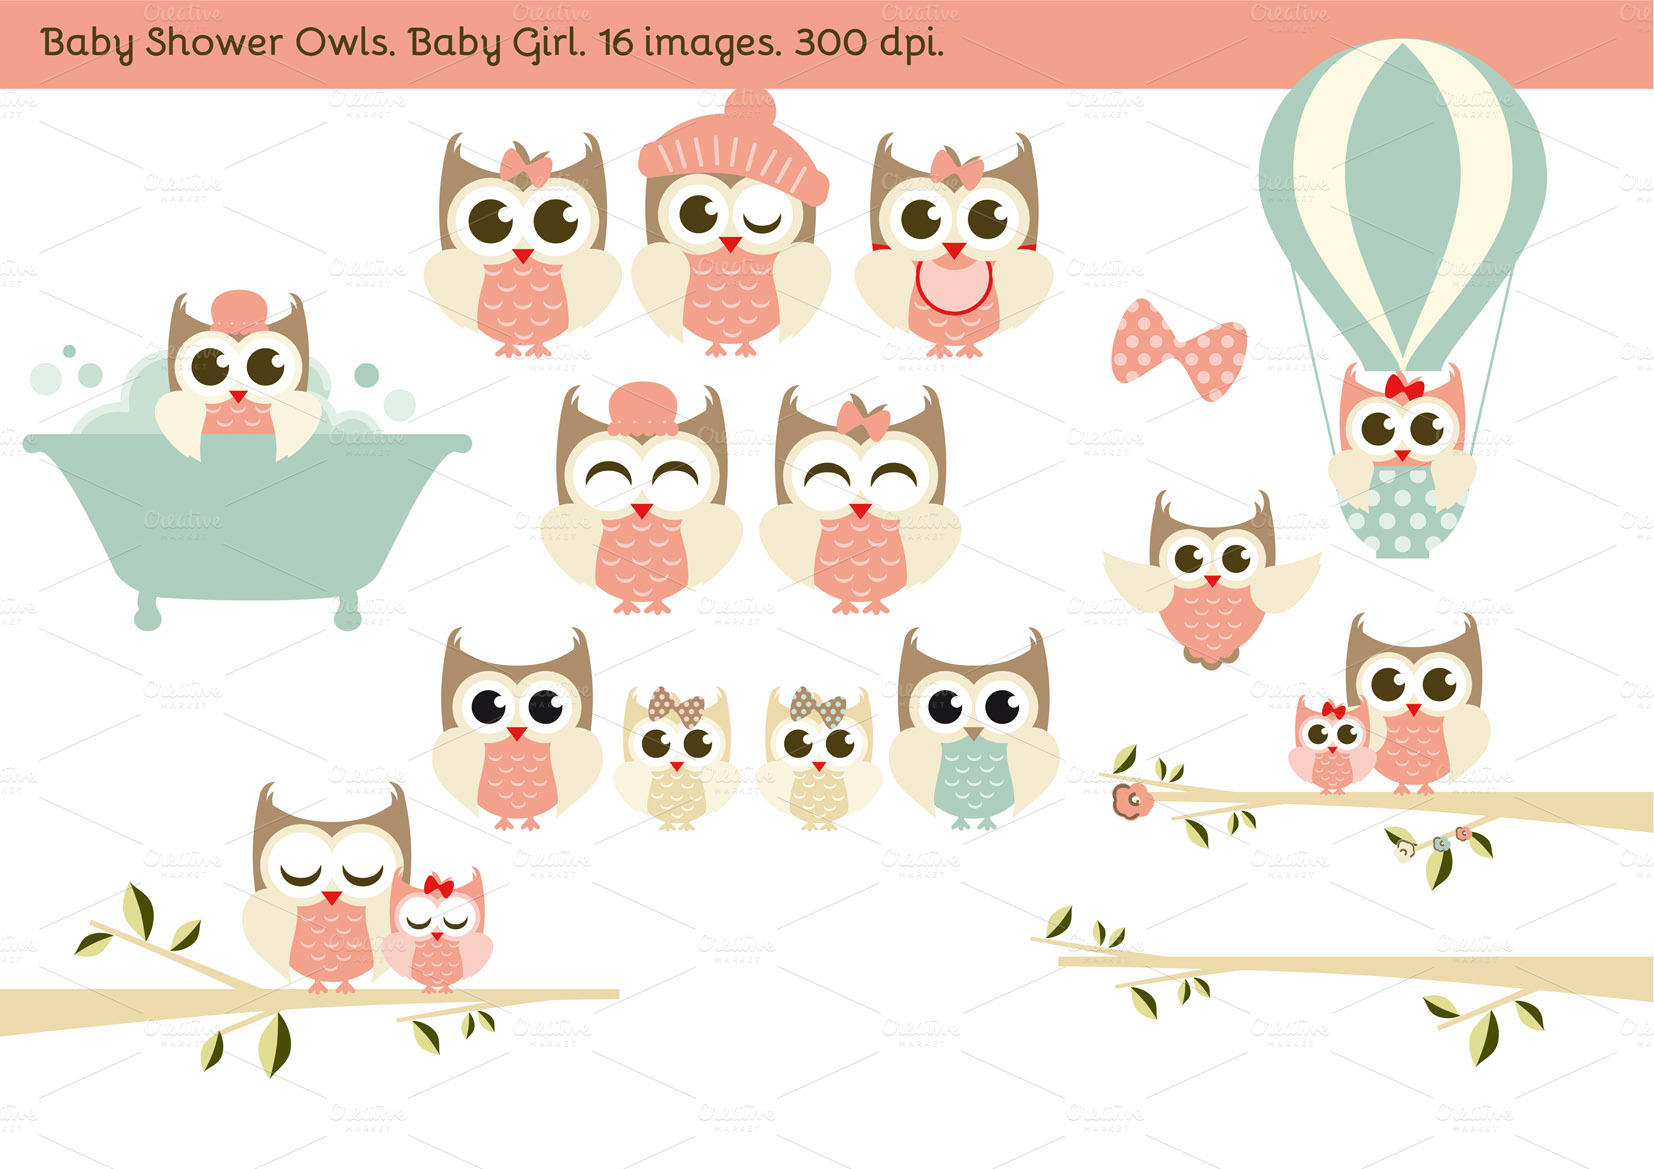 baby shower owls baby girl illustrations on creative